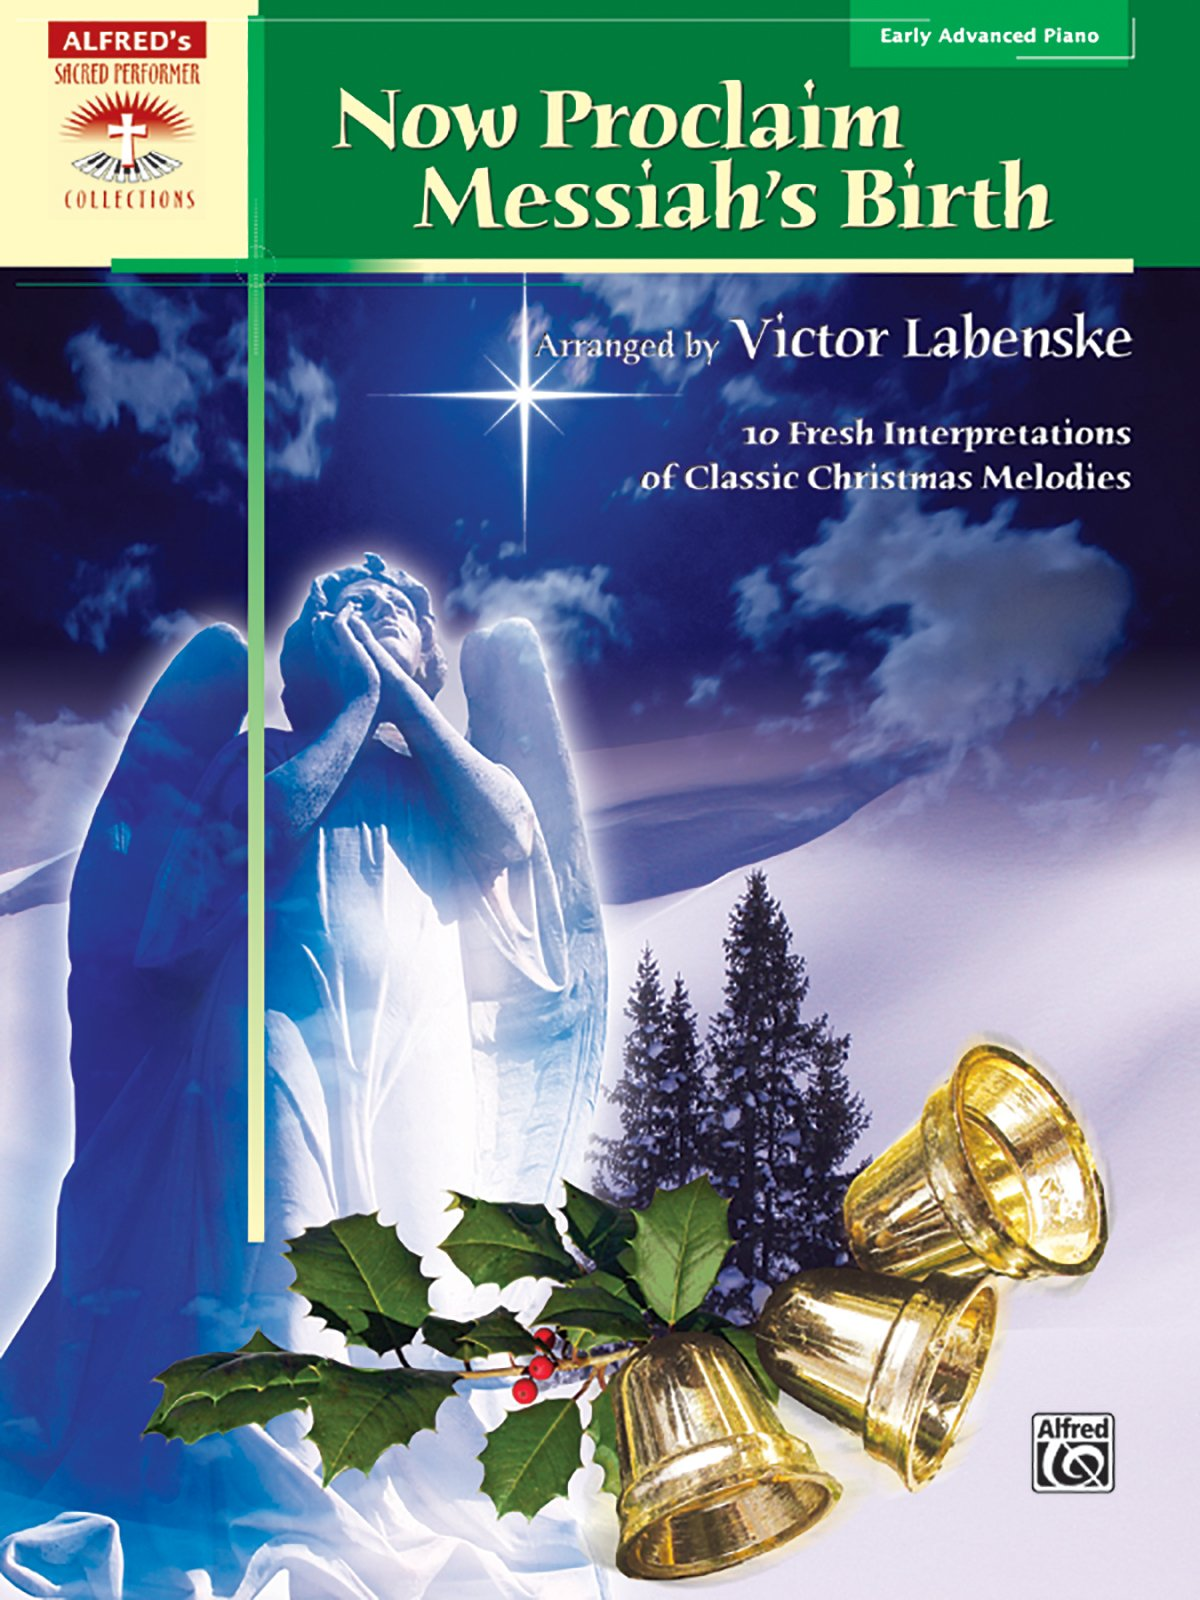 Download Now Proclaim Messiah's Birth: 10 Fresh Interpretations of Classic Christmas Melodies (Sacred Performer Collections) ebook